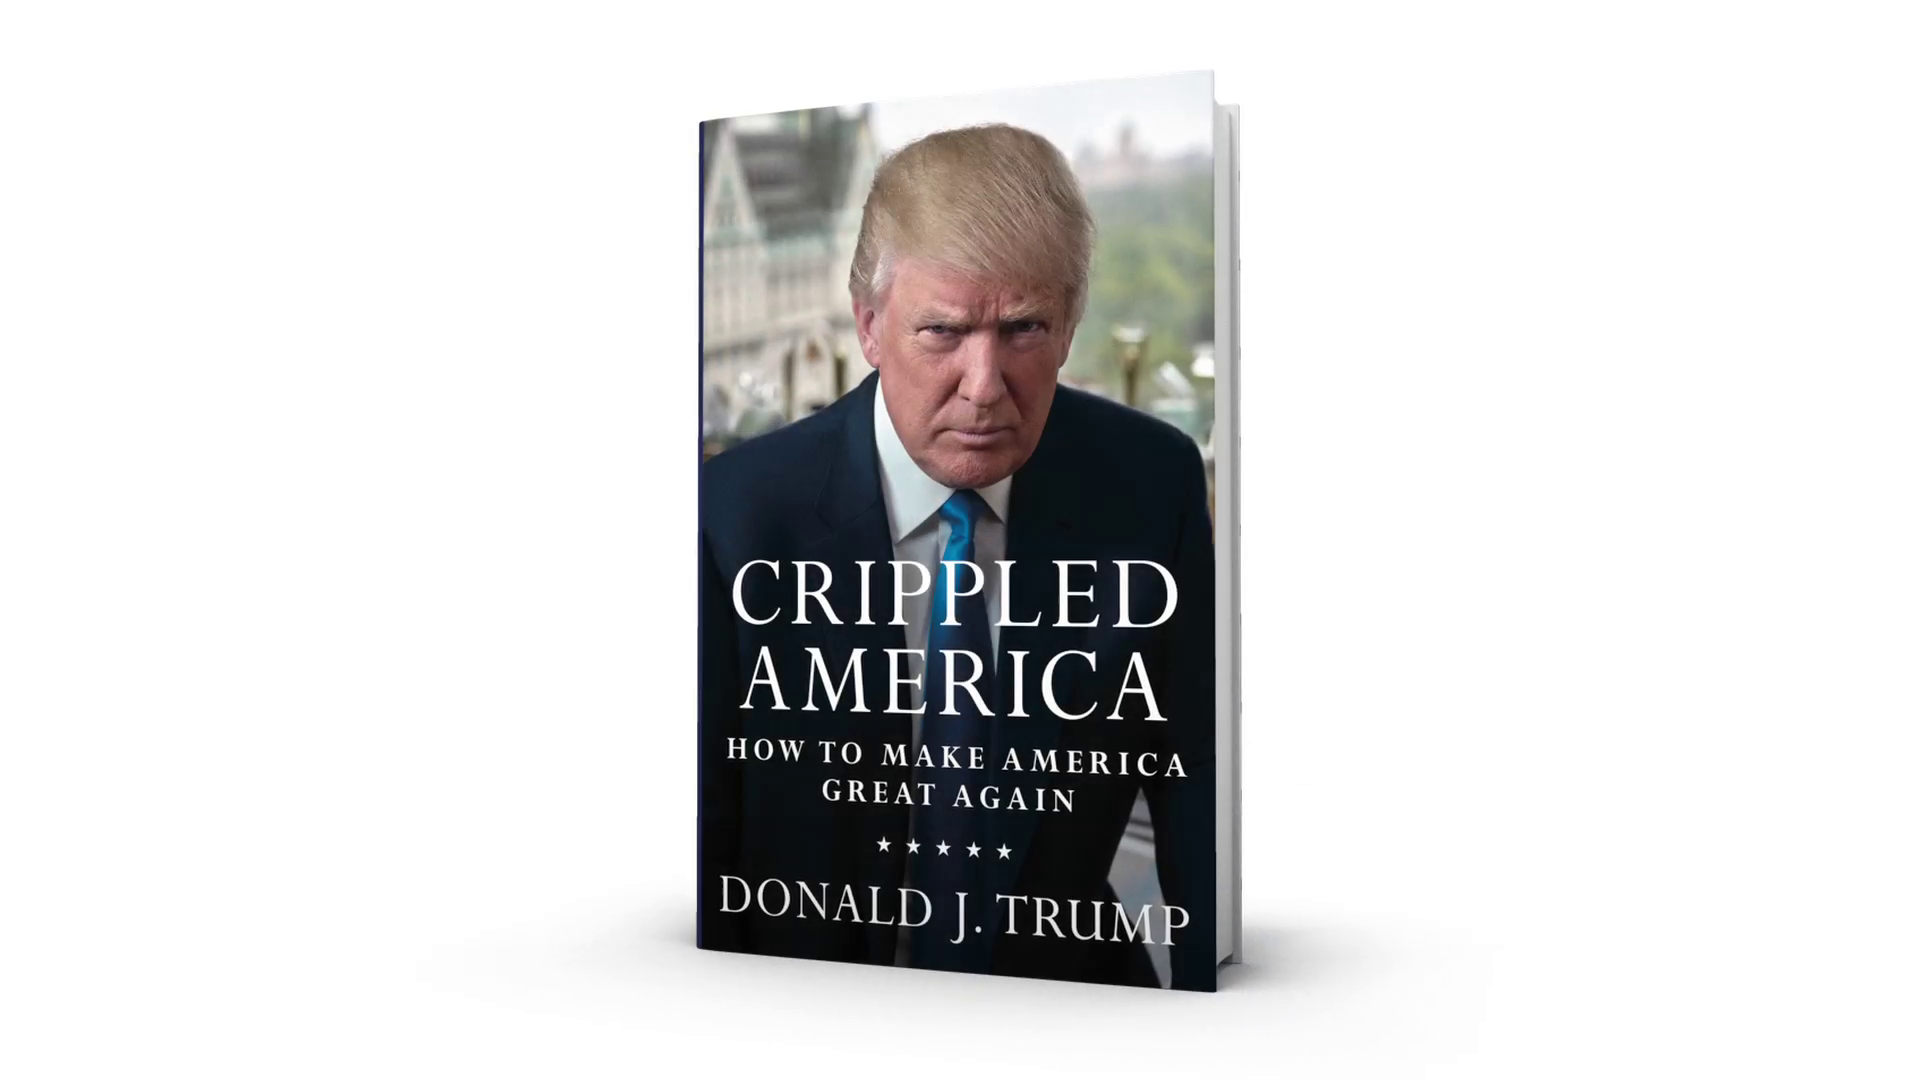 'Crippled America' by Donald Trump